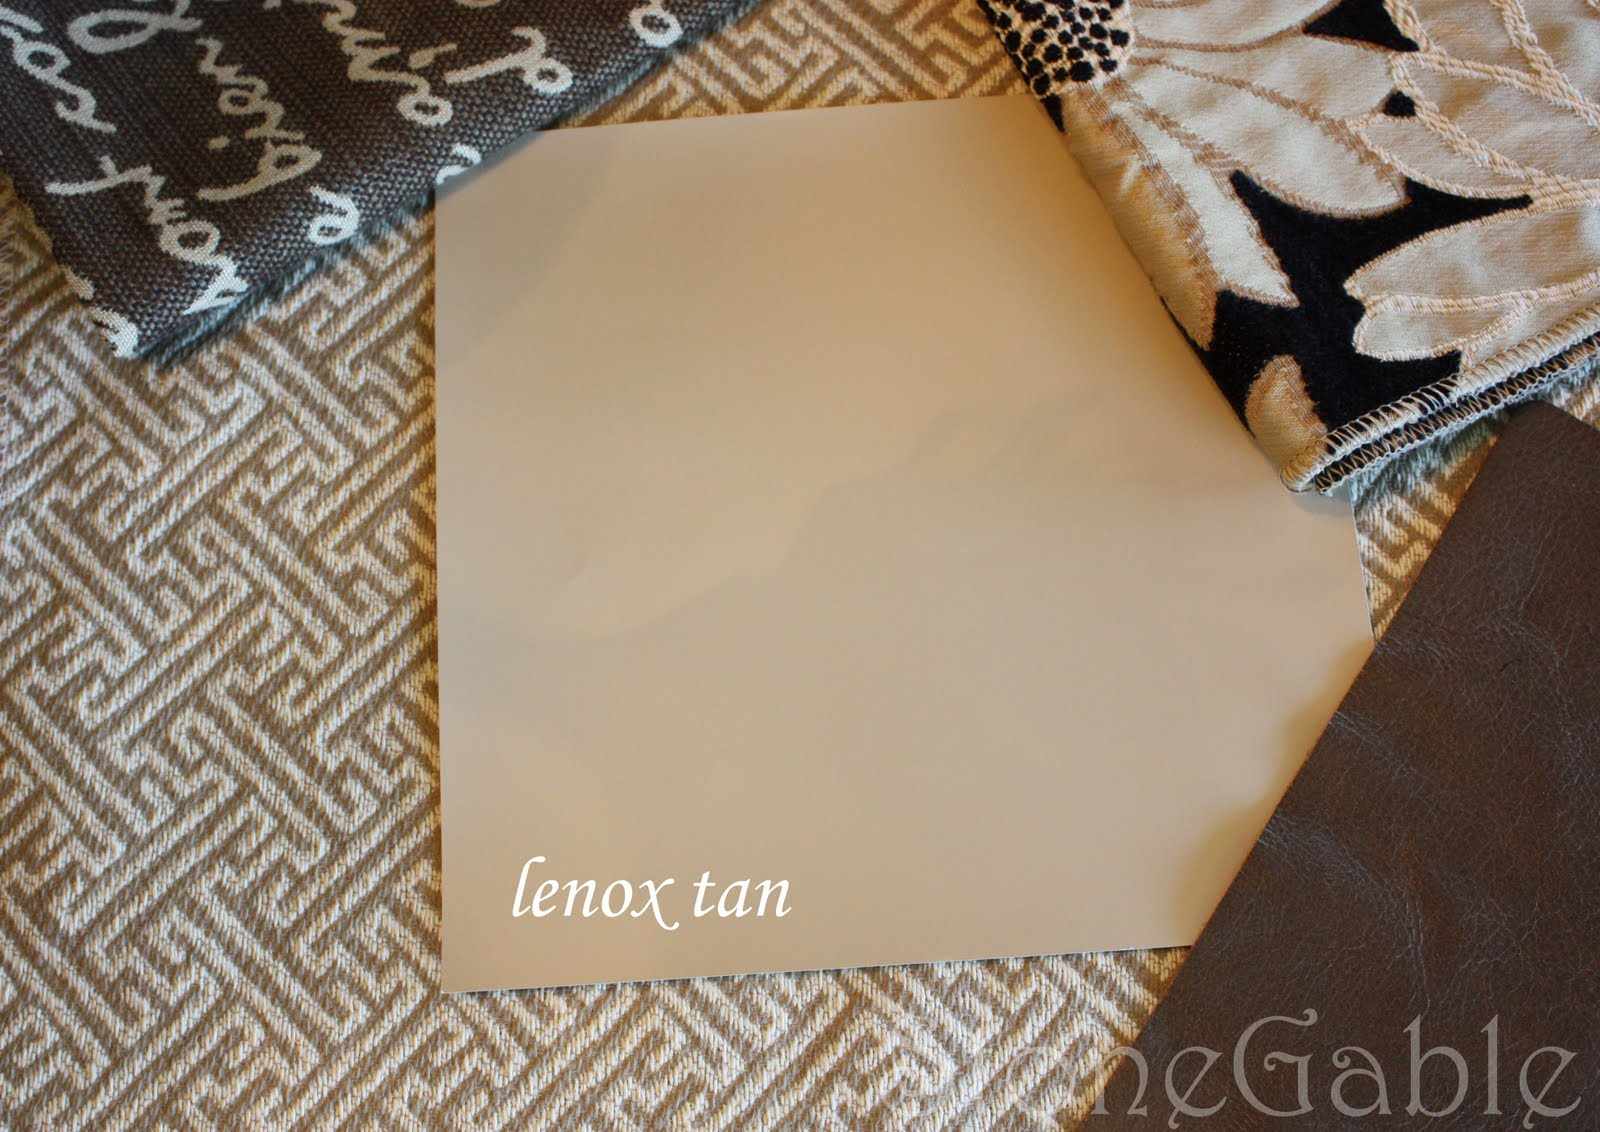 Lenox tan benjamin moore reviews - And These Neutrals Too